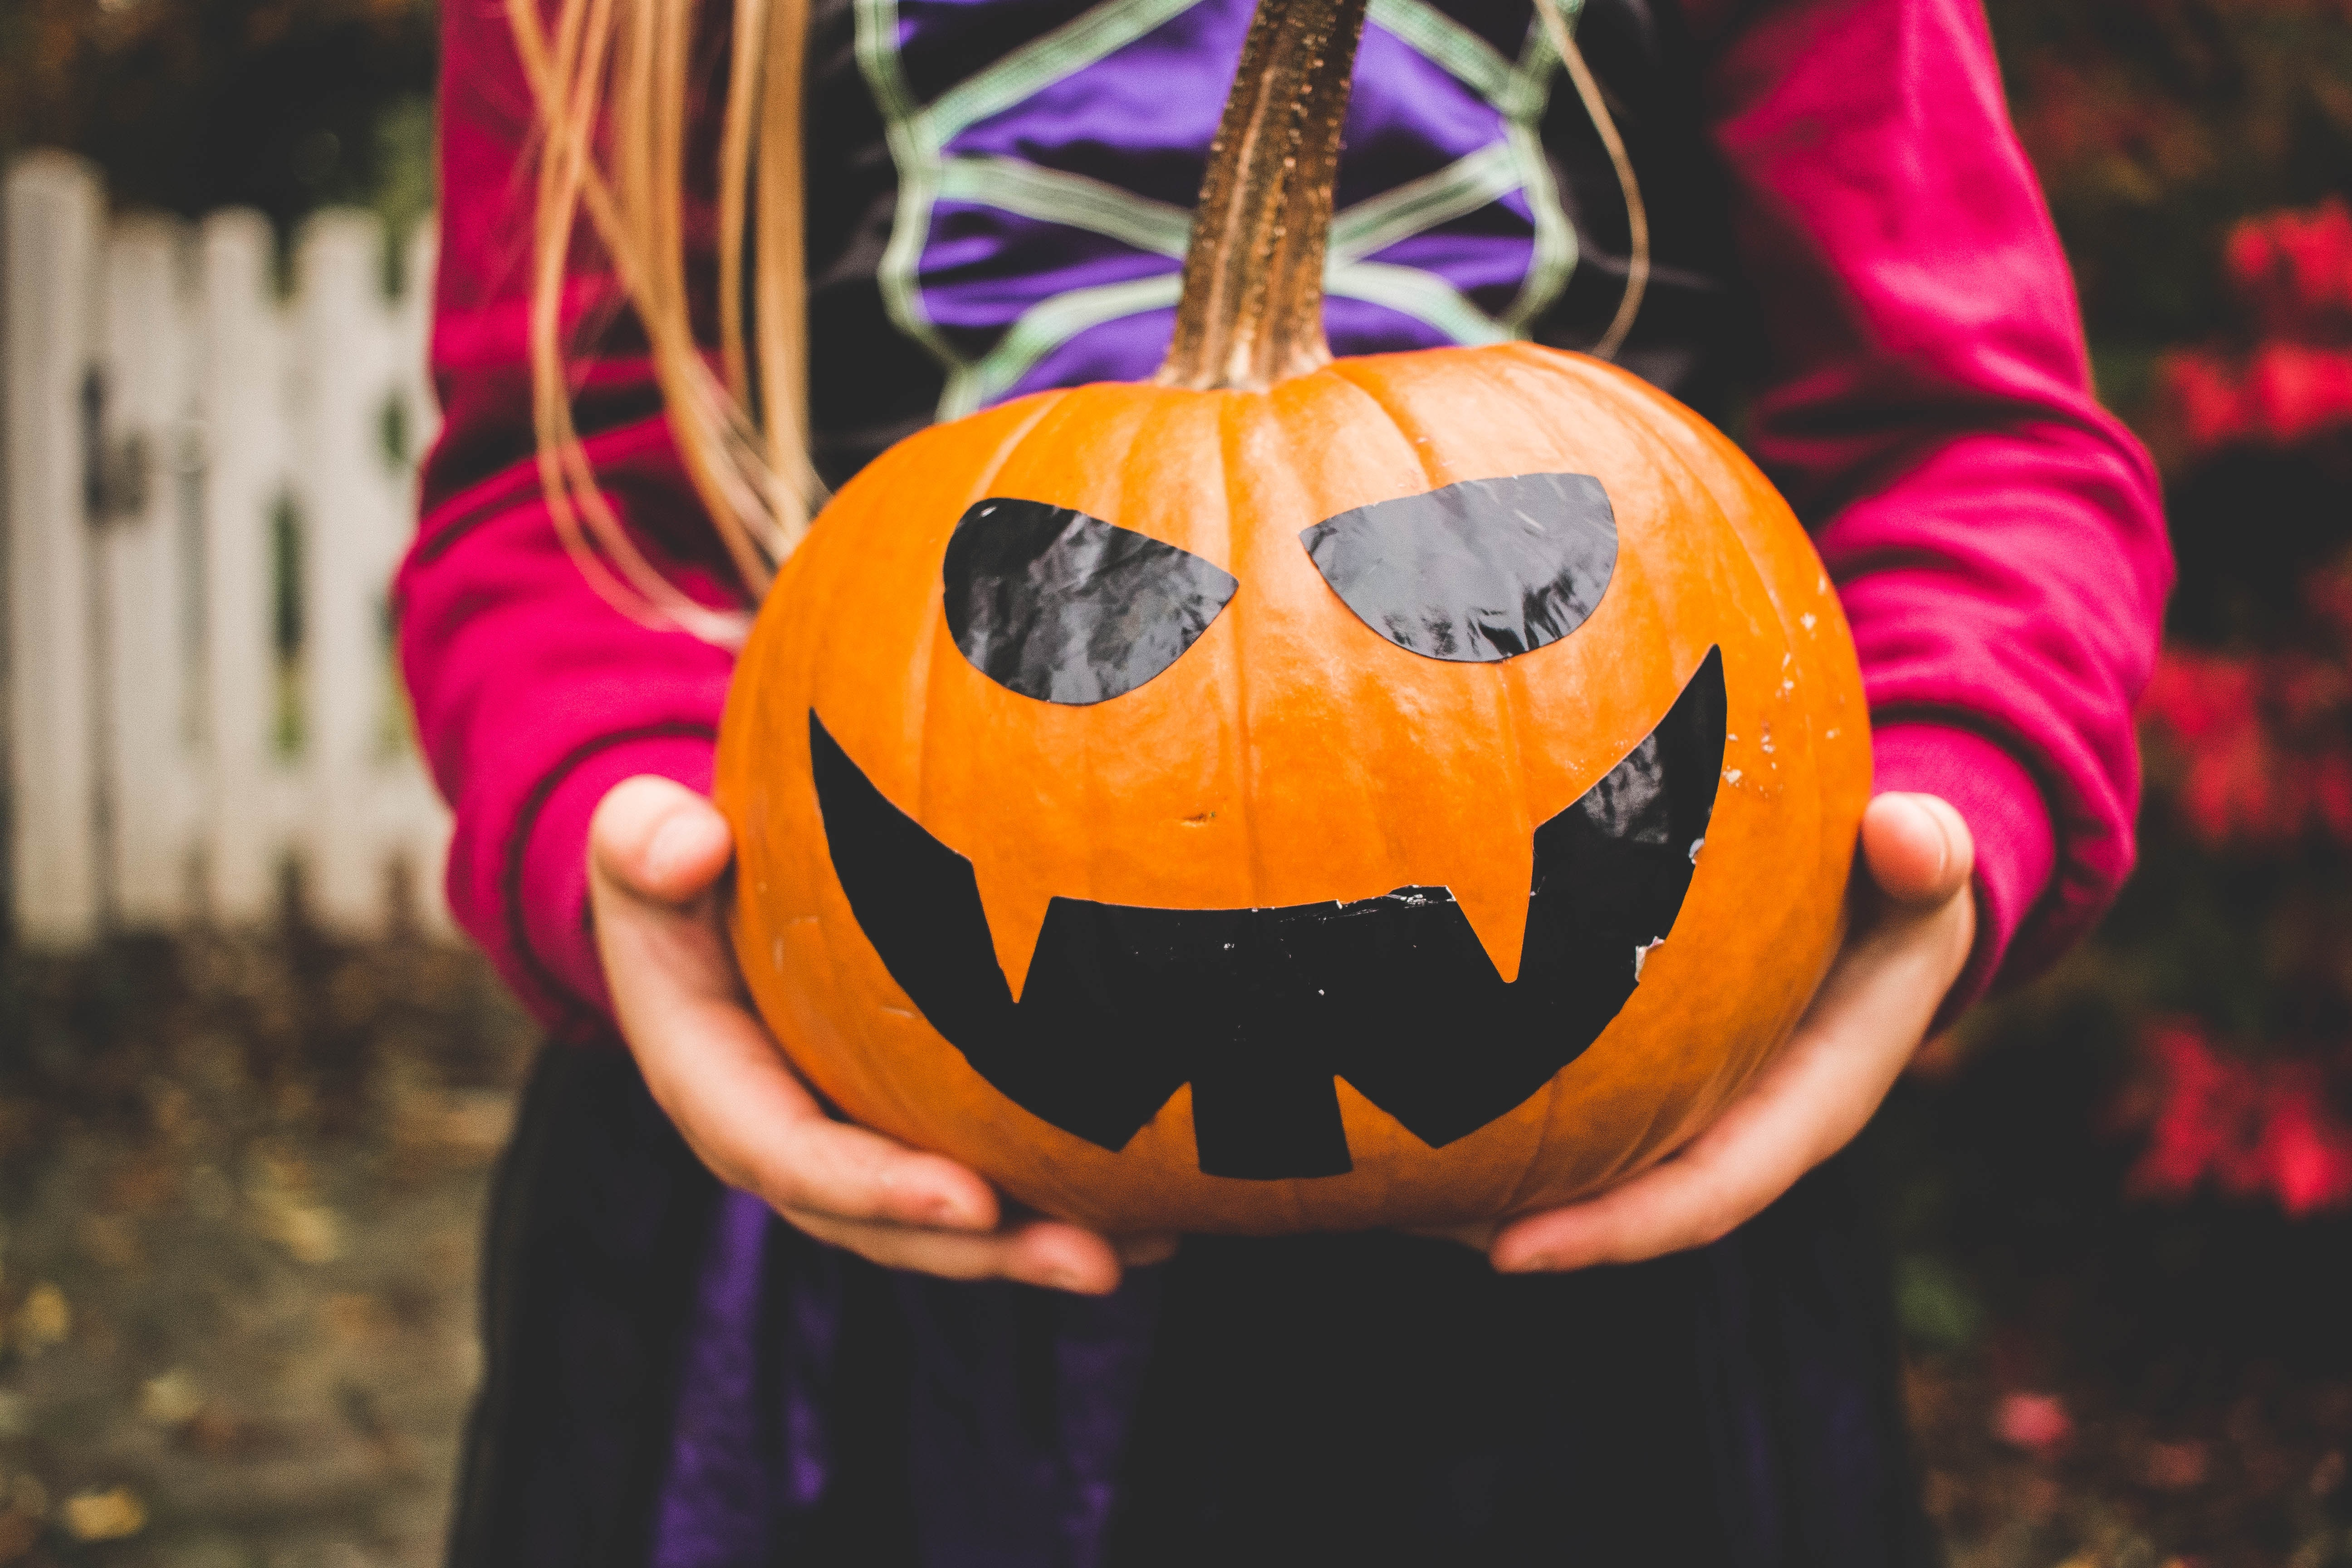 little girl in costume holding a pumpkin with carvings